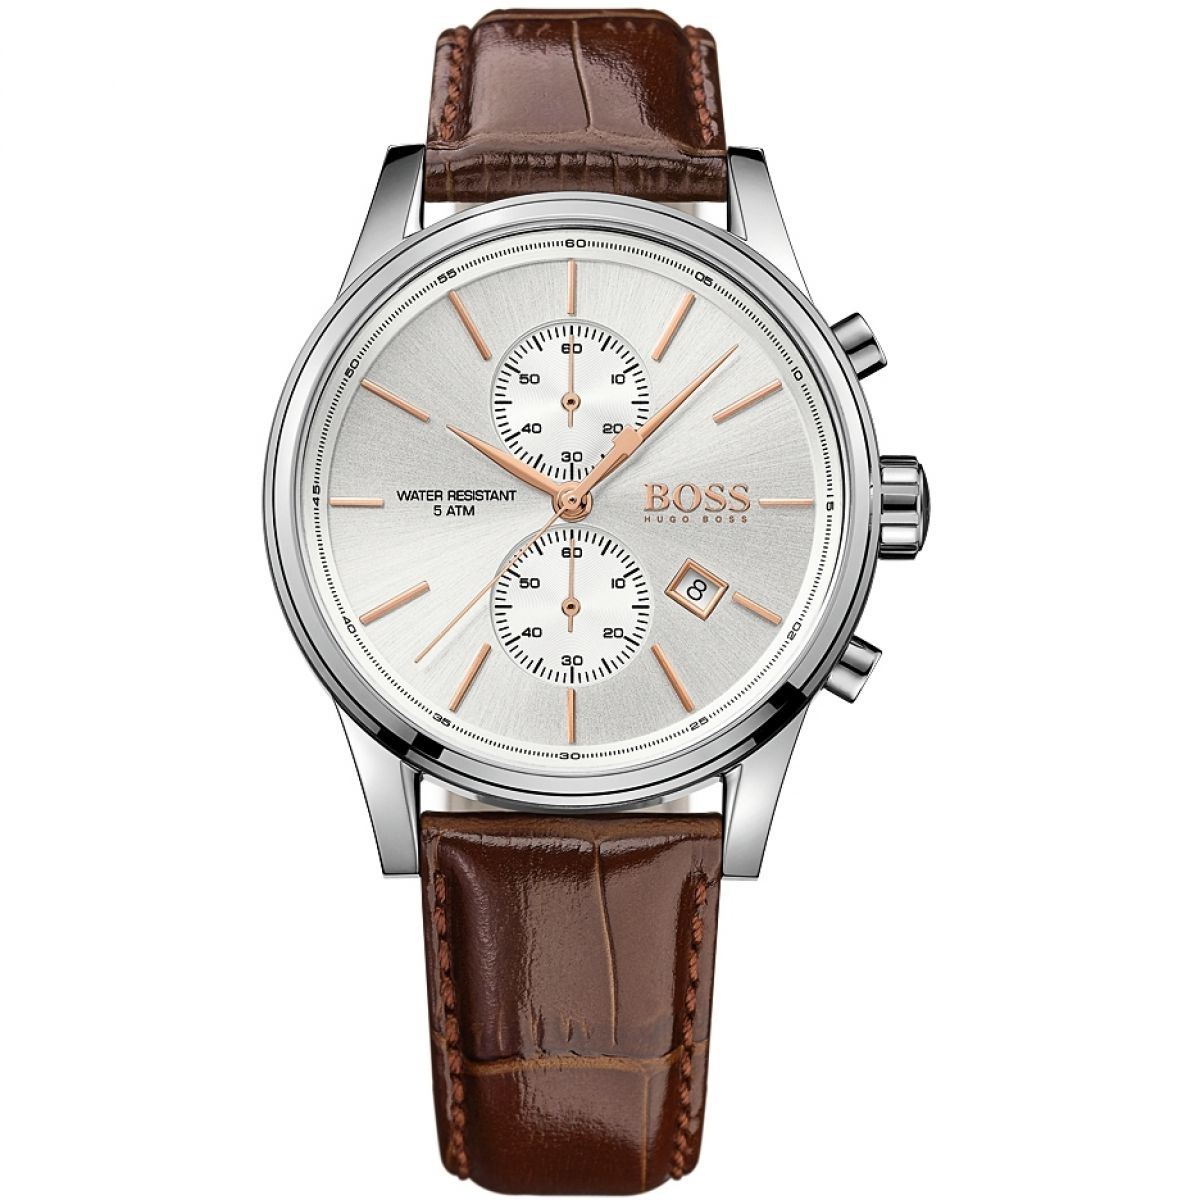 5fa901e148e1 Hugo Boss HB1513280 JET 41mm Brown Leather Strap Men's Chronograph Watch